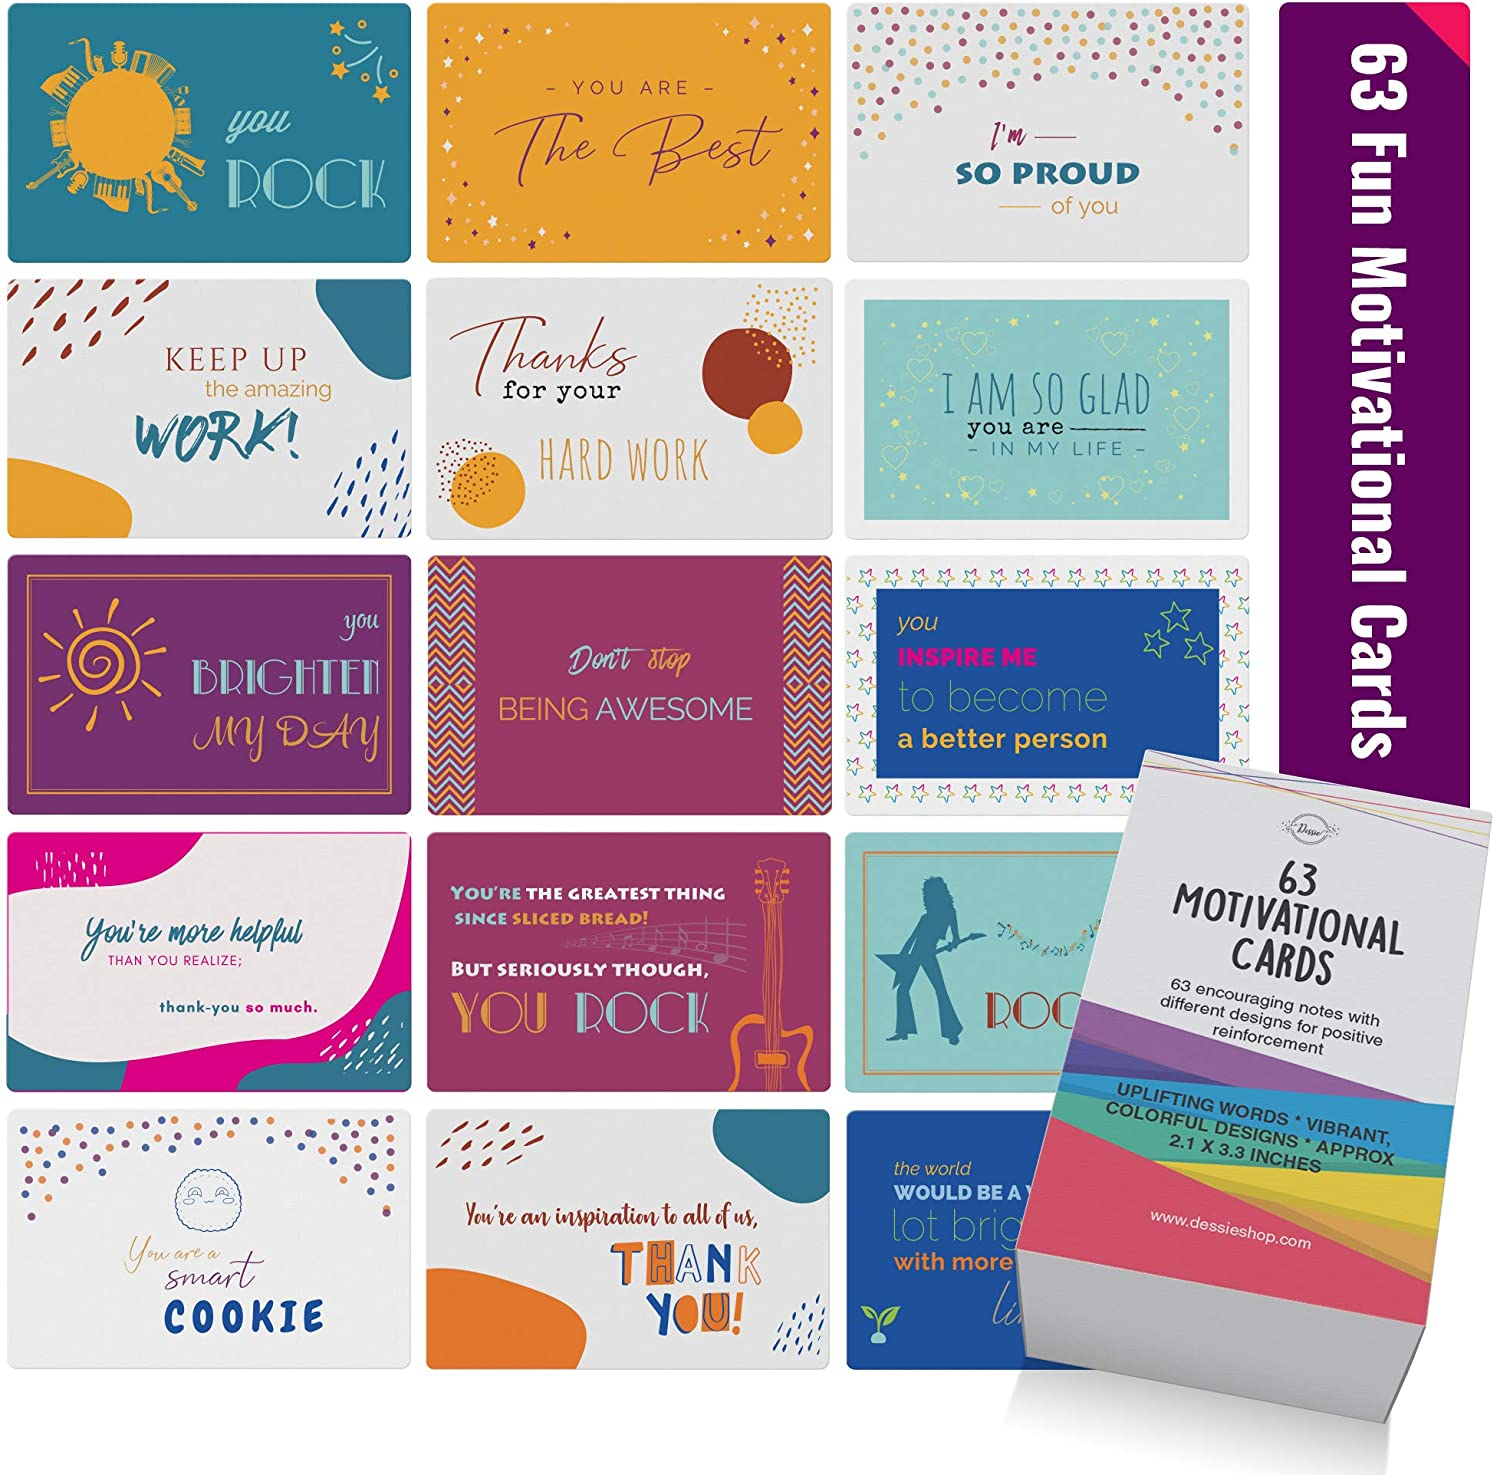 Dessie Motivational Cards - 63 Fun Motivational Quote Cards With Inspirational Quotes